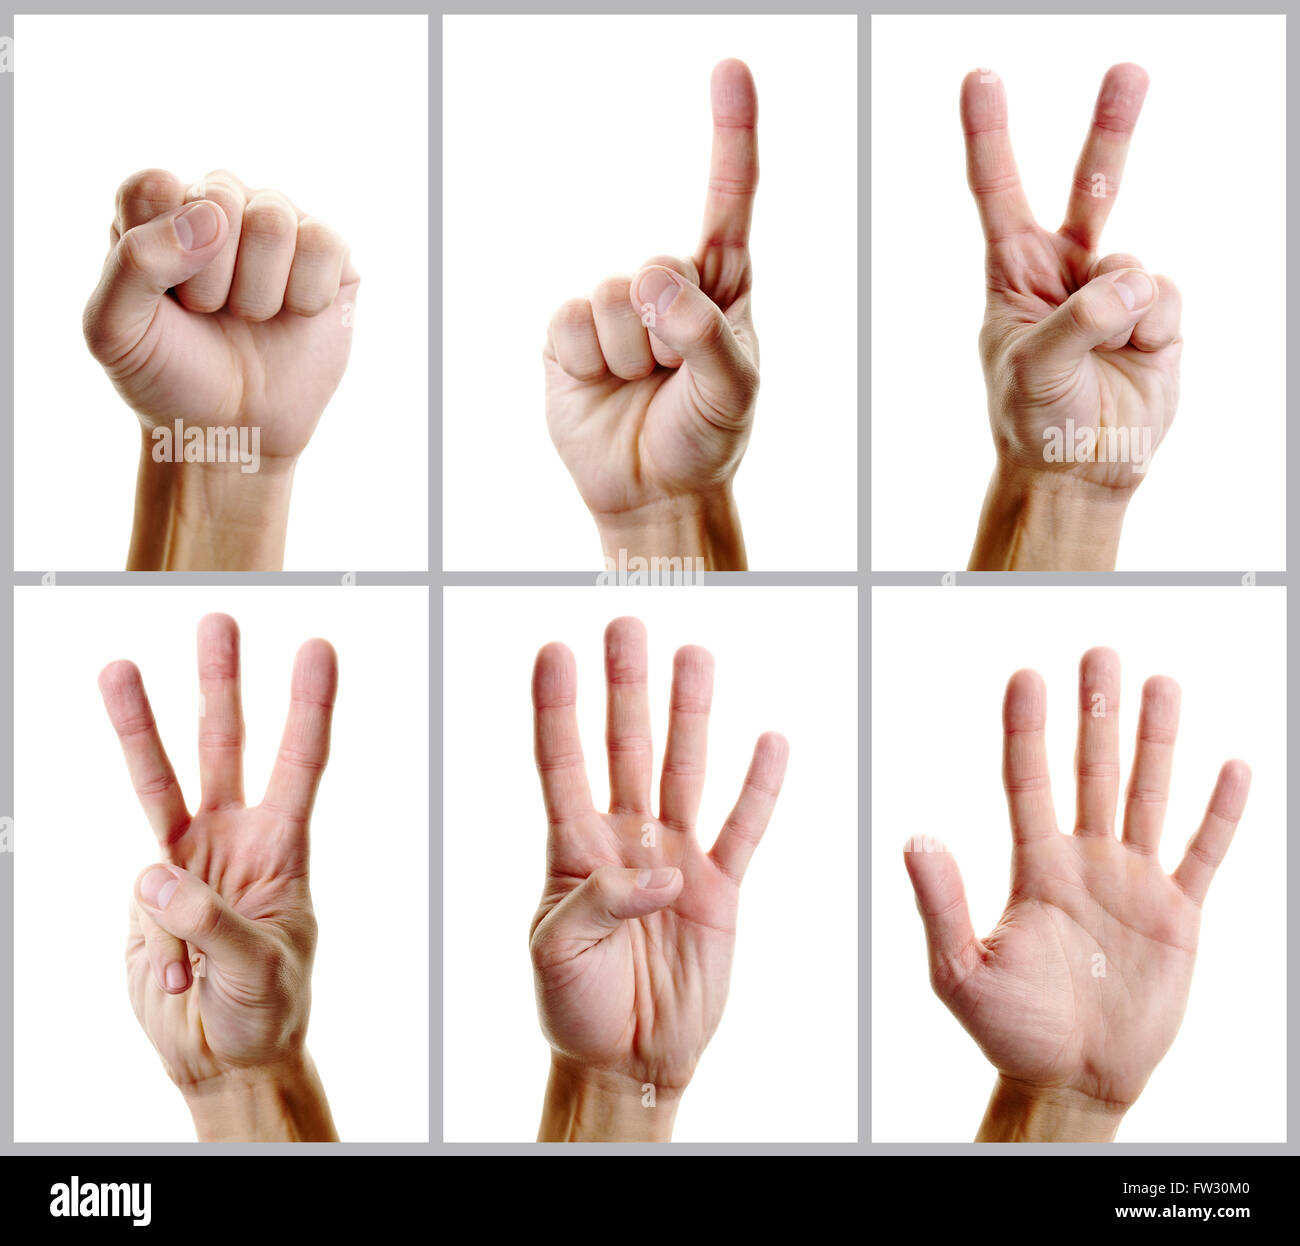 Hand counting - Stock Image